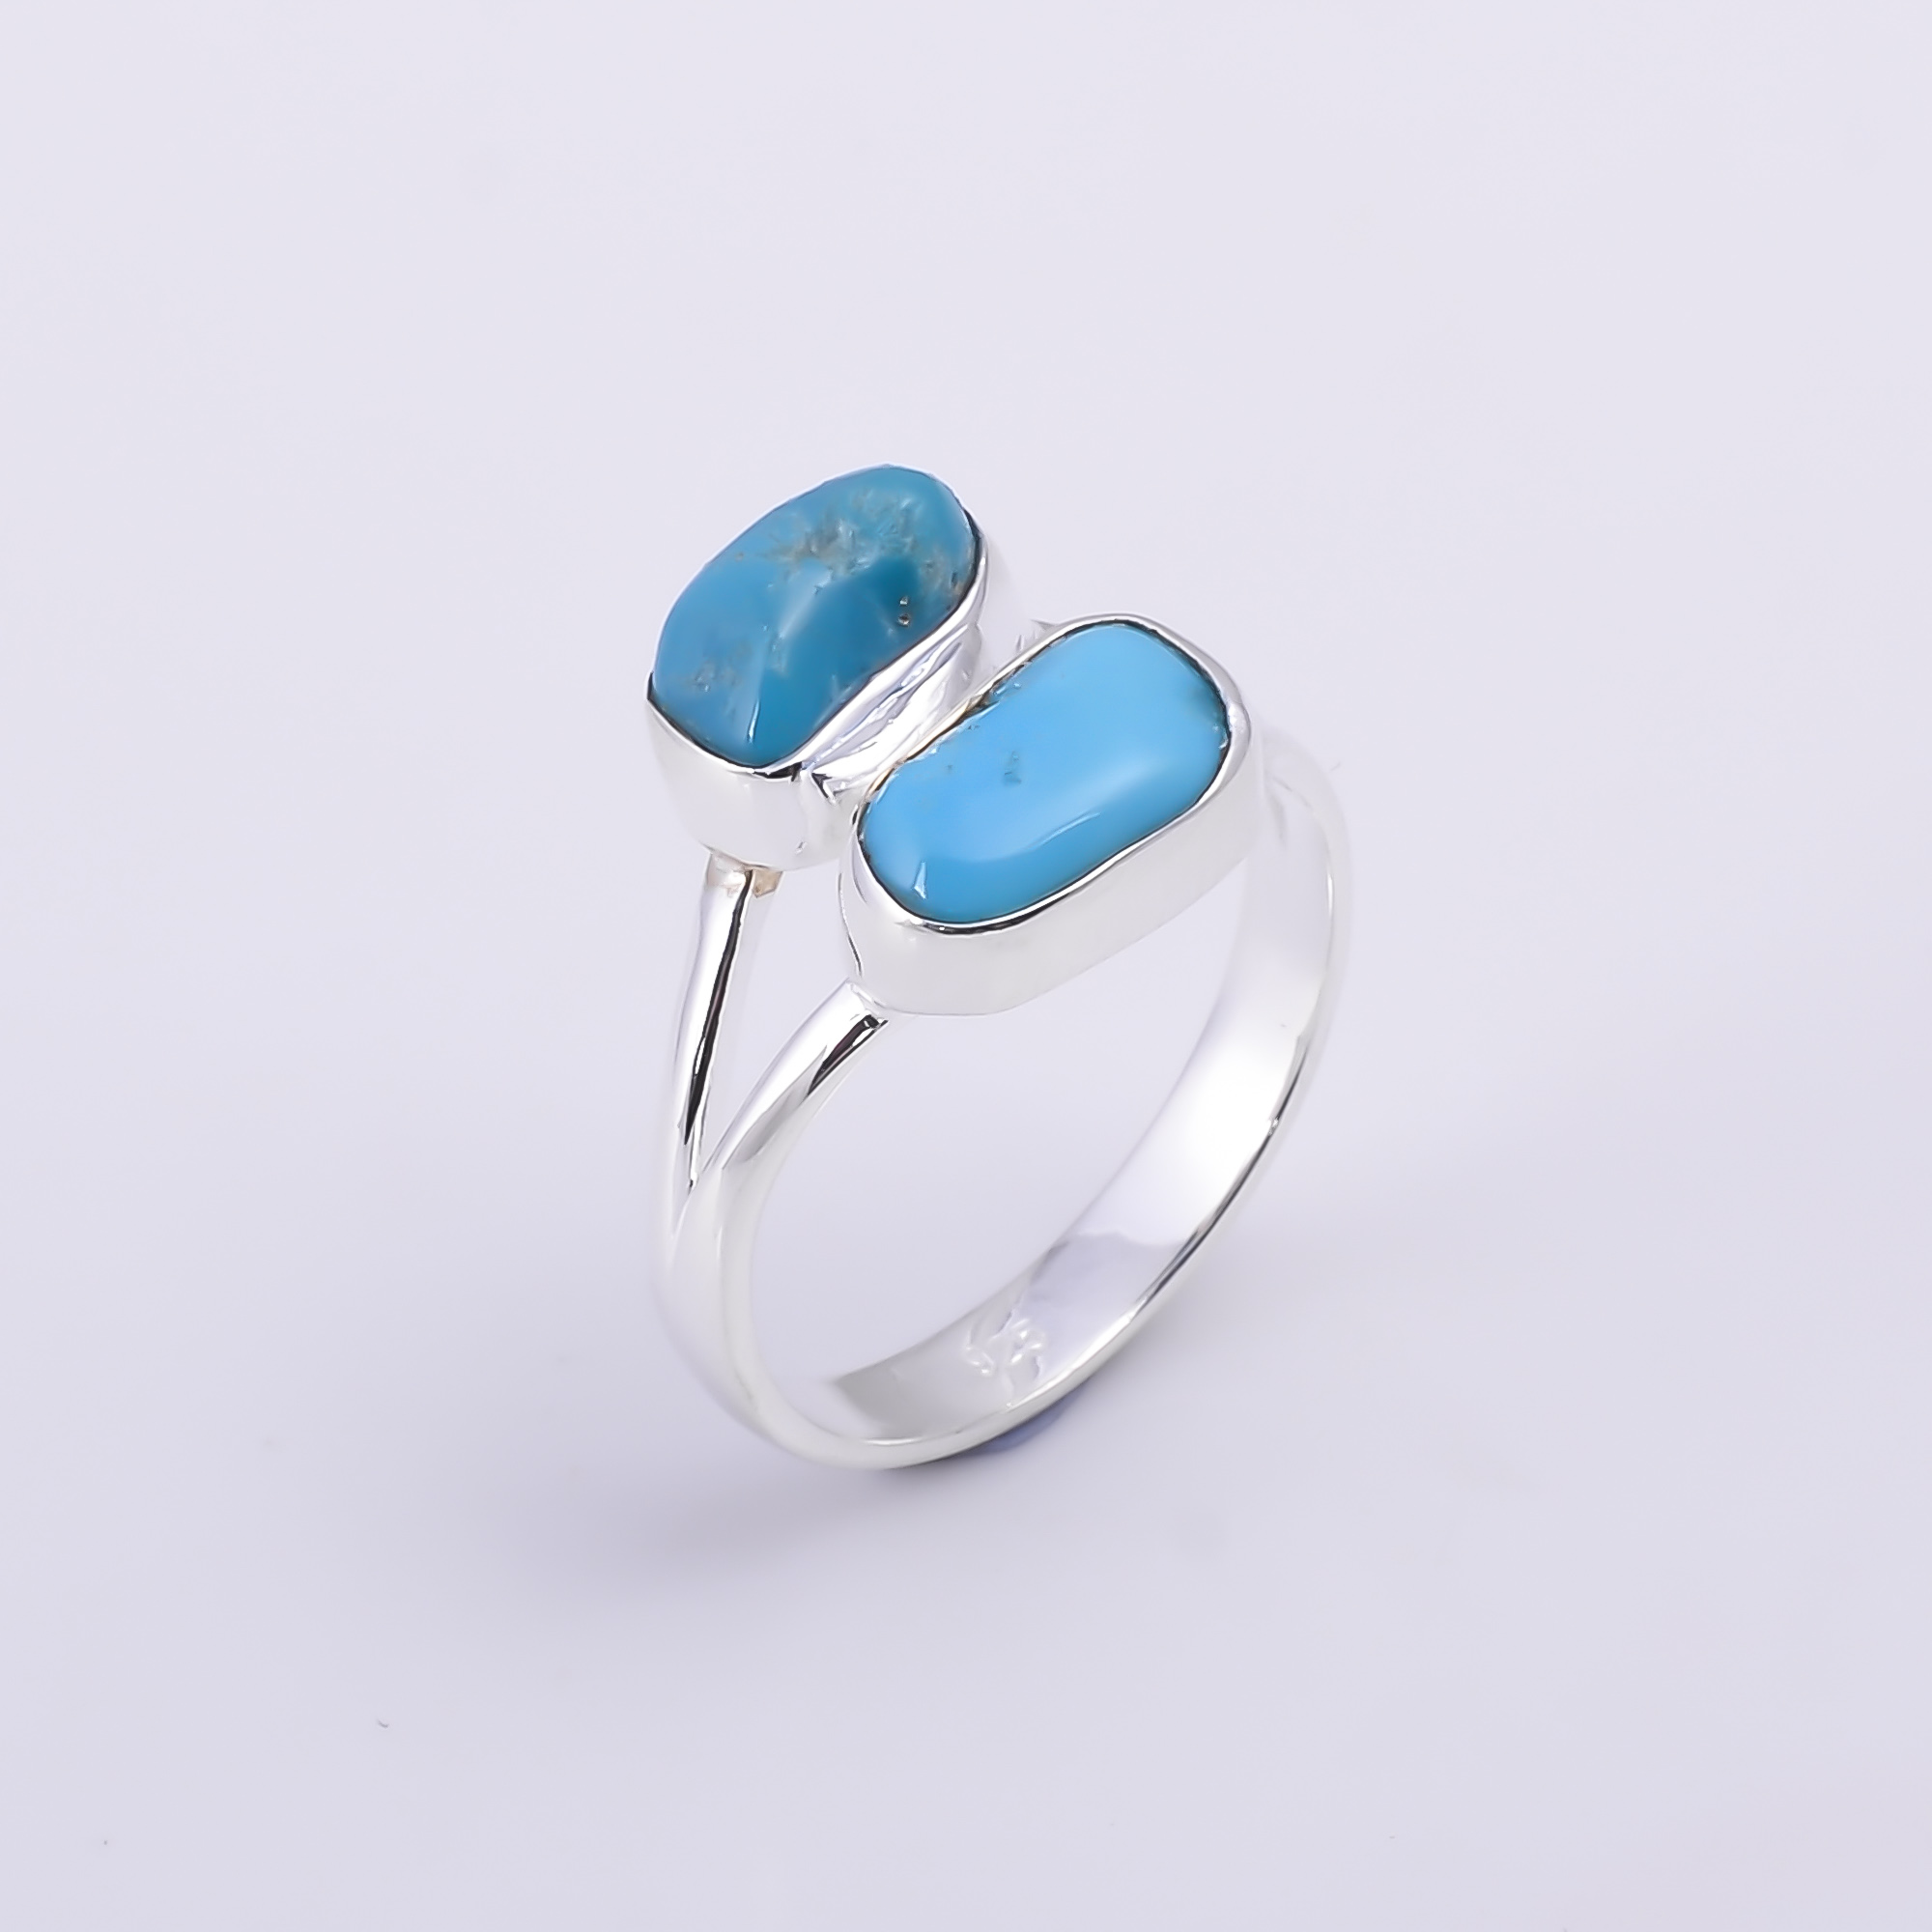 Turquoise Raw Gemstone 925 Sterling Silver Ring Size US 9